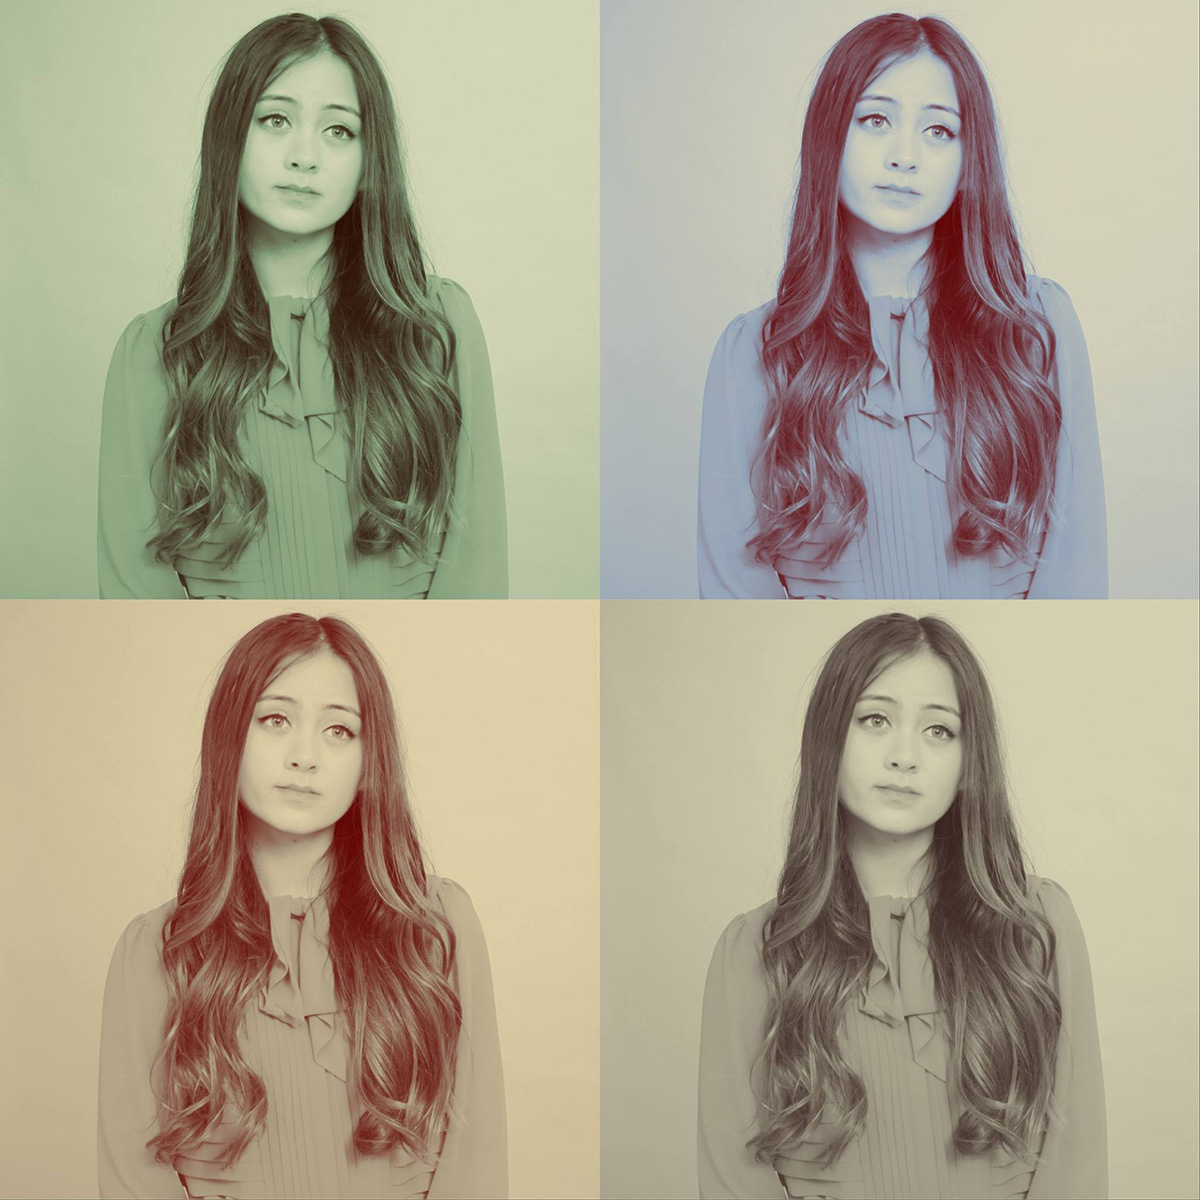 artikel_117_jasmine_thompson